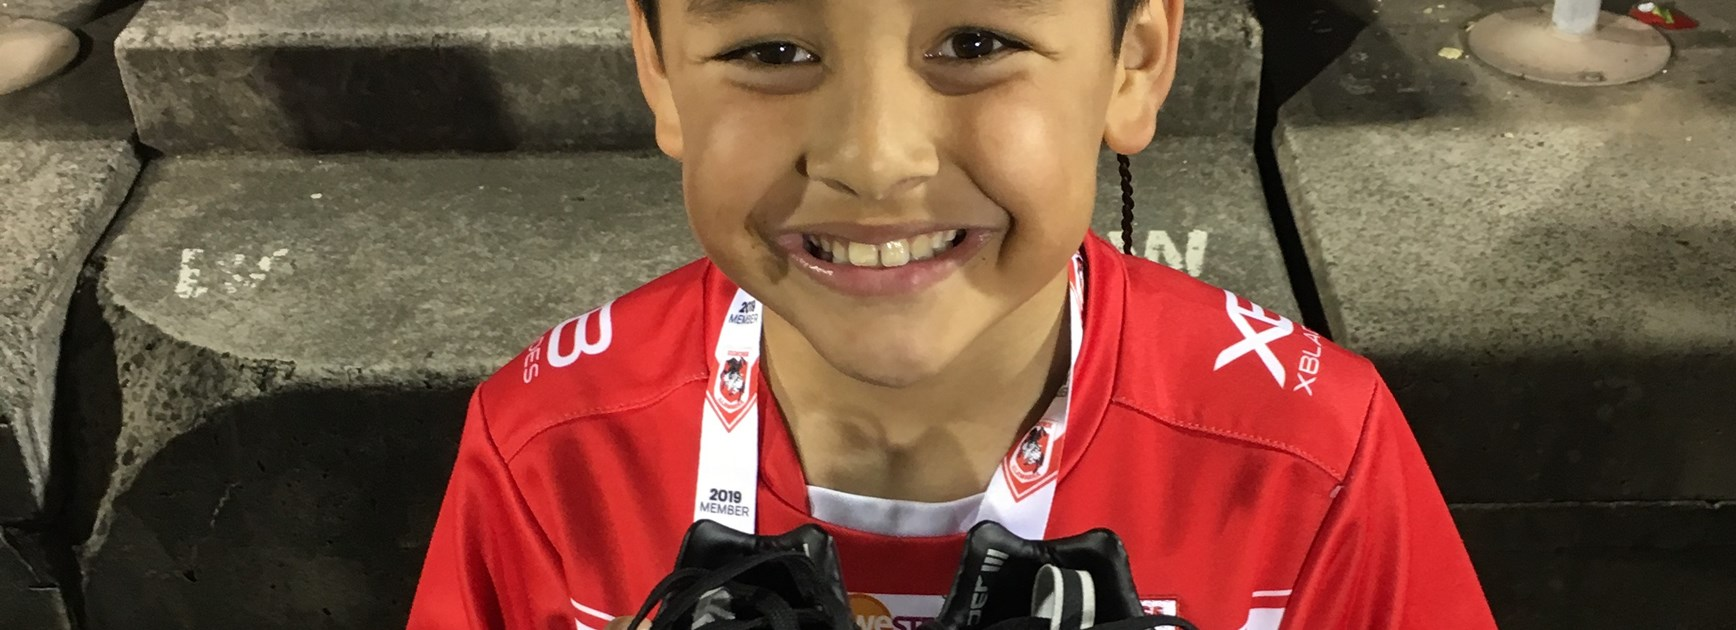 Frizell brightens fan's day despite concussion